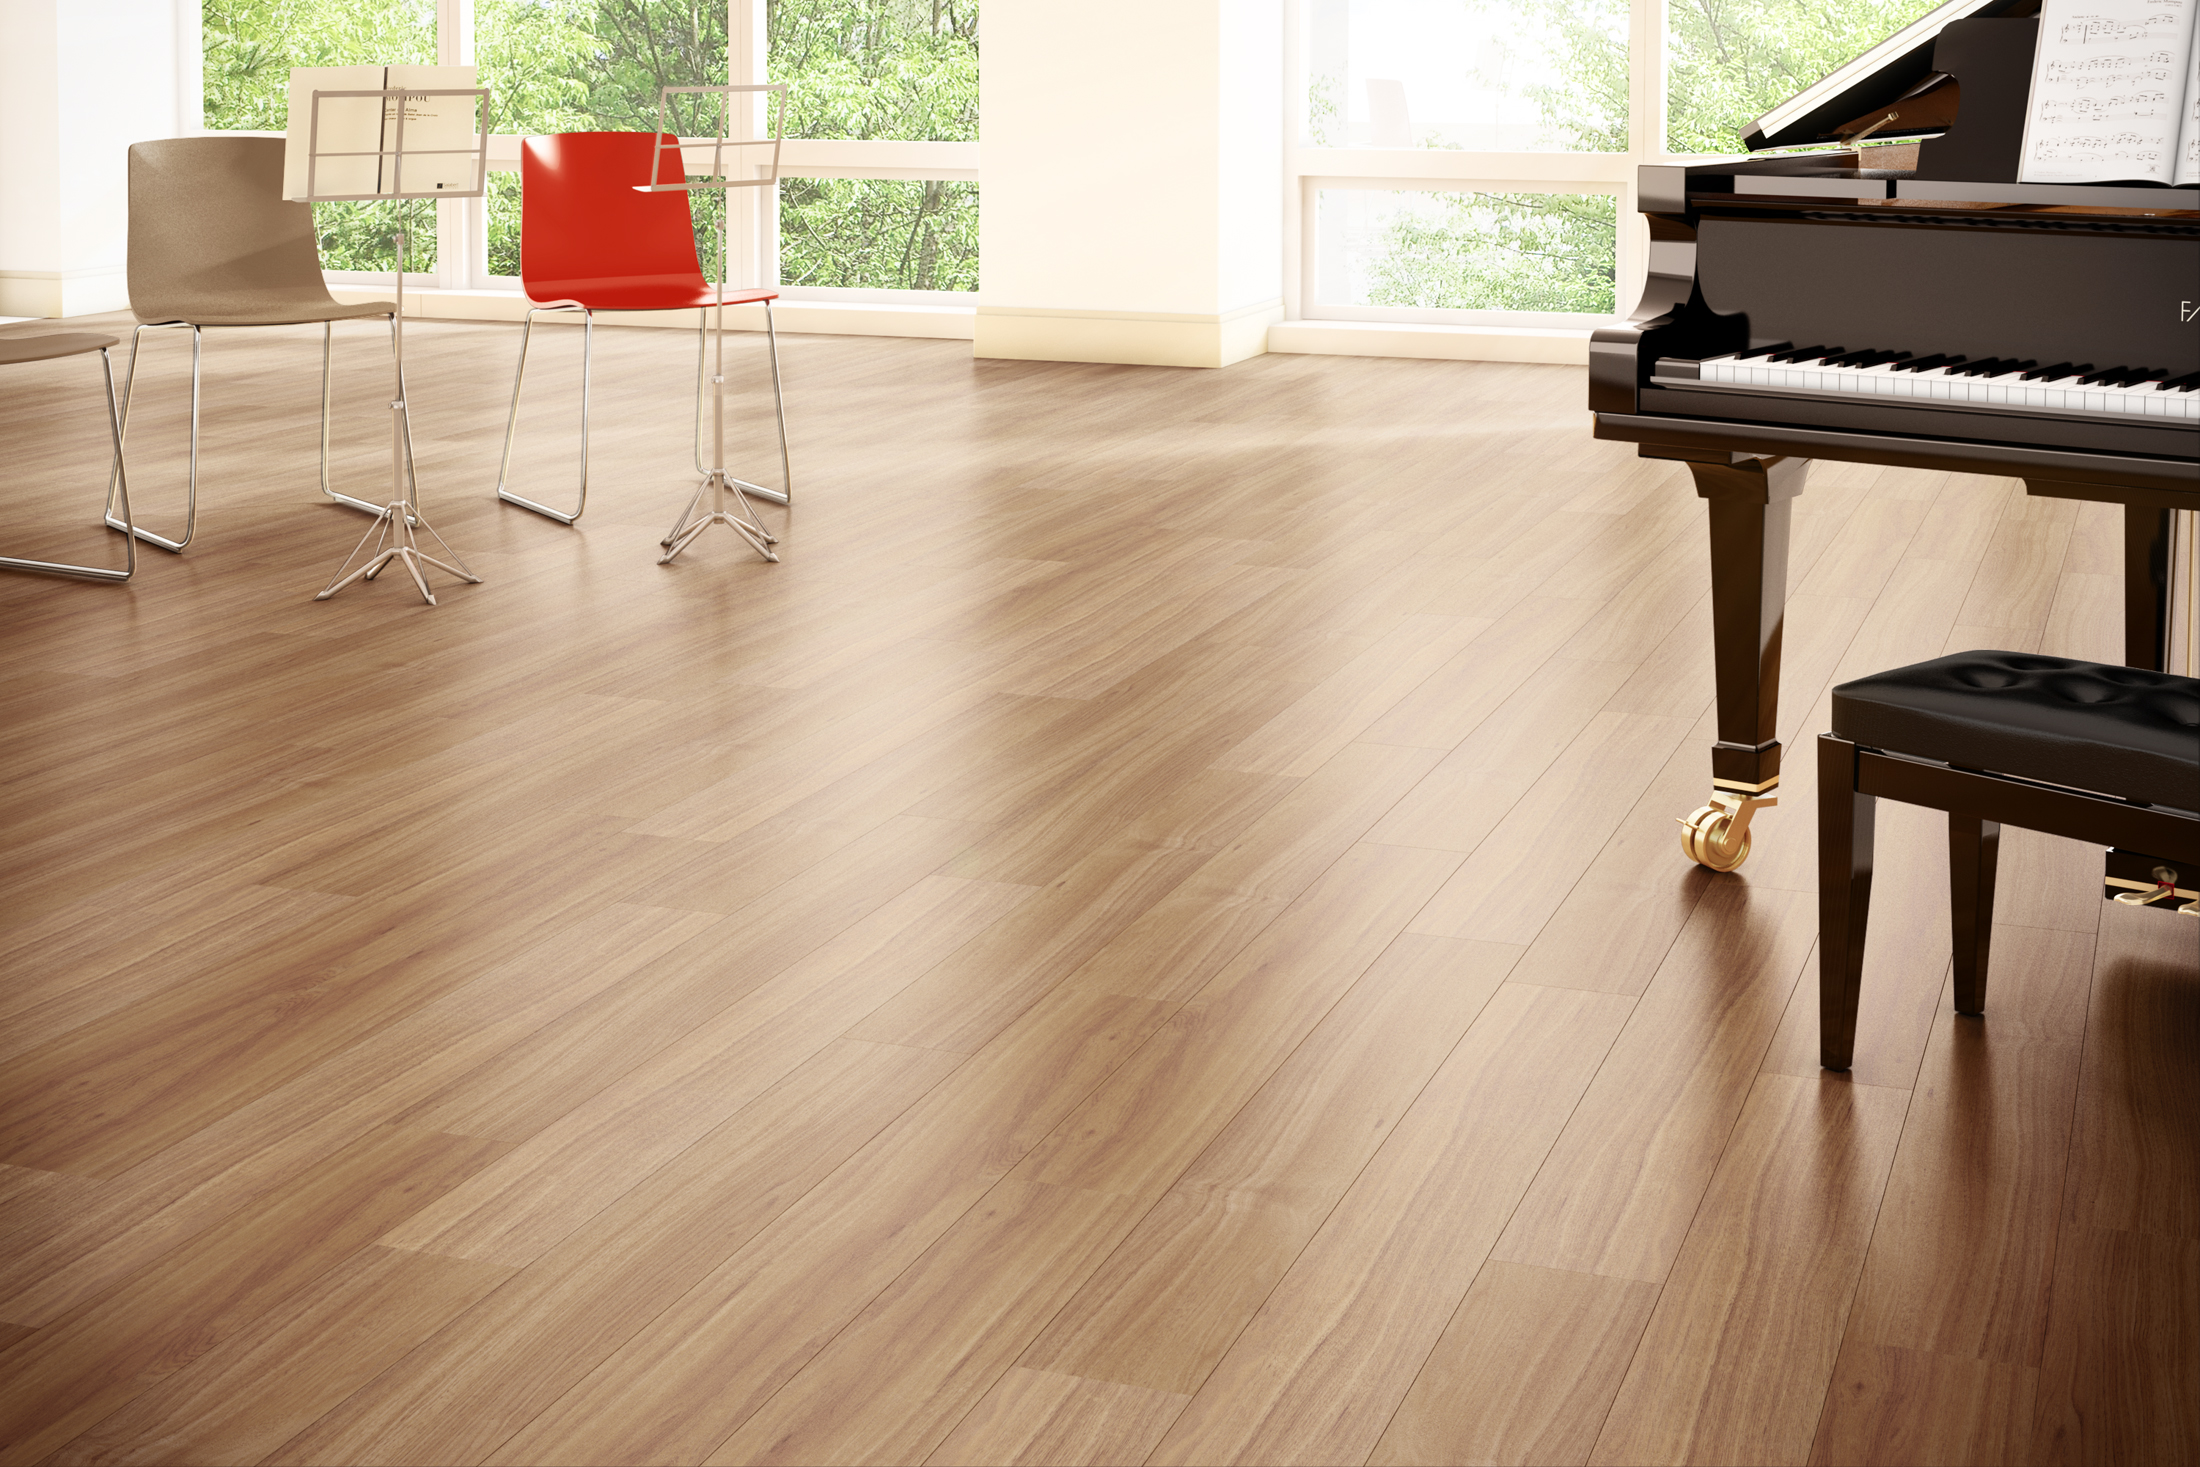 Get Best Vinyl Floor Tiles In Dubai Abu Dhabi Across Uae At Price